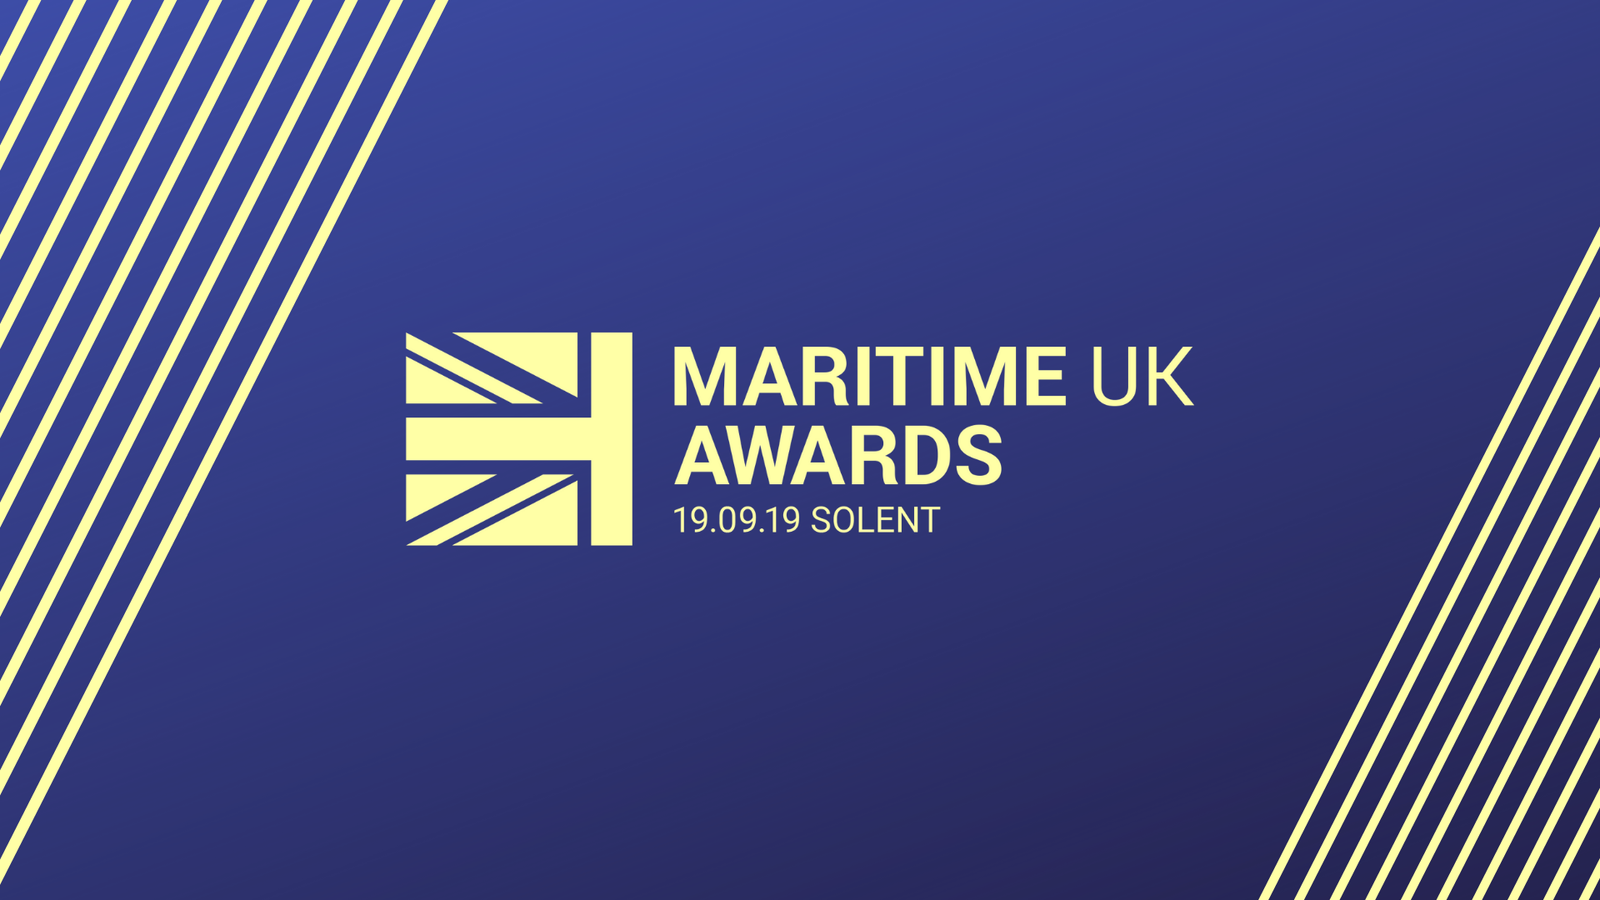 Maritime UK Awards 2019